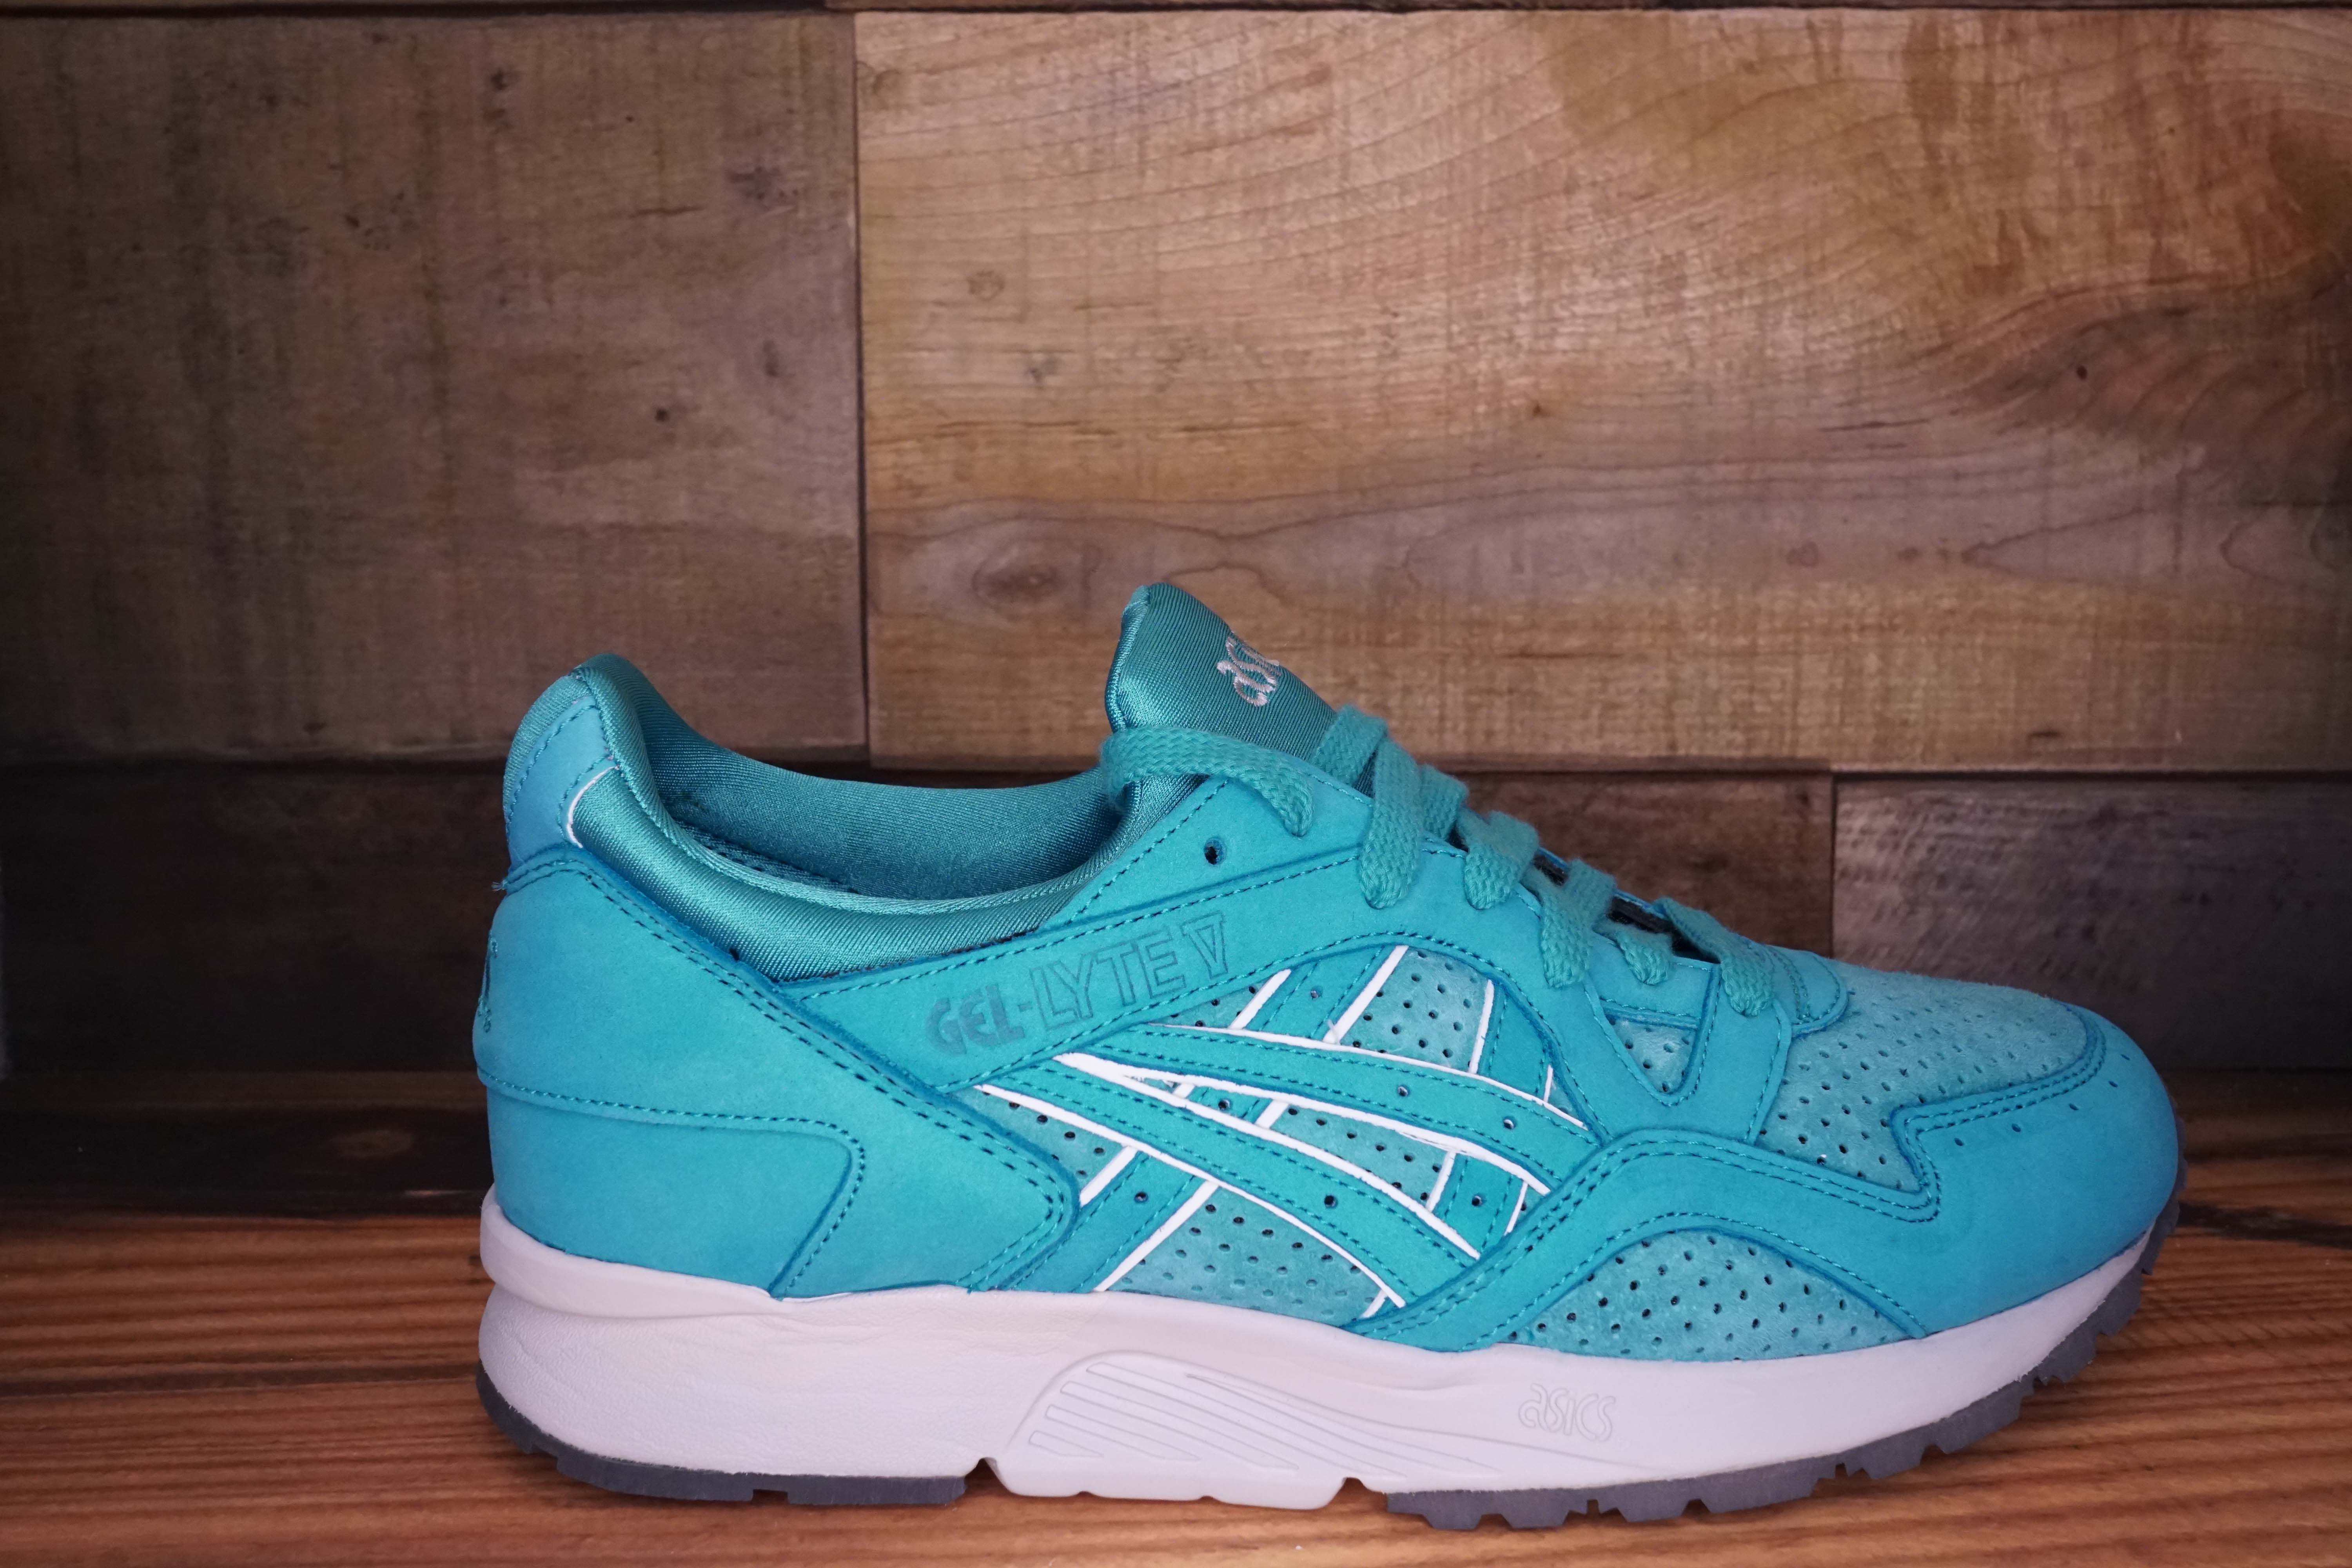 Asics-Gel-Lyte-V-COVE-Size-9.5-New-with-Original-Box_1690A.jpg